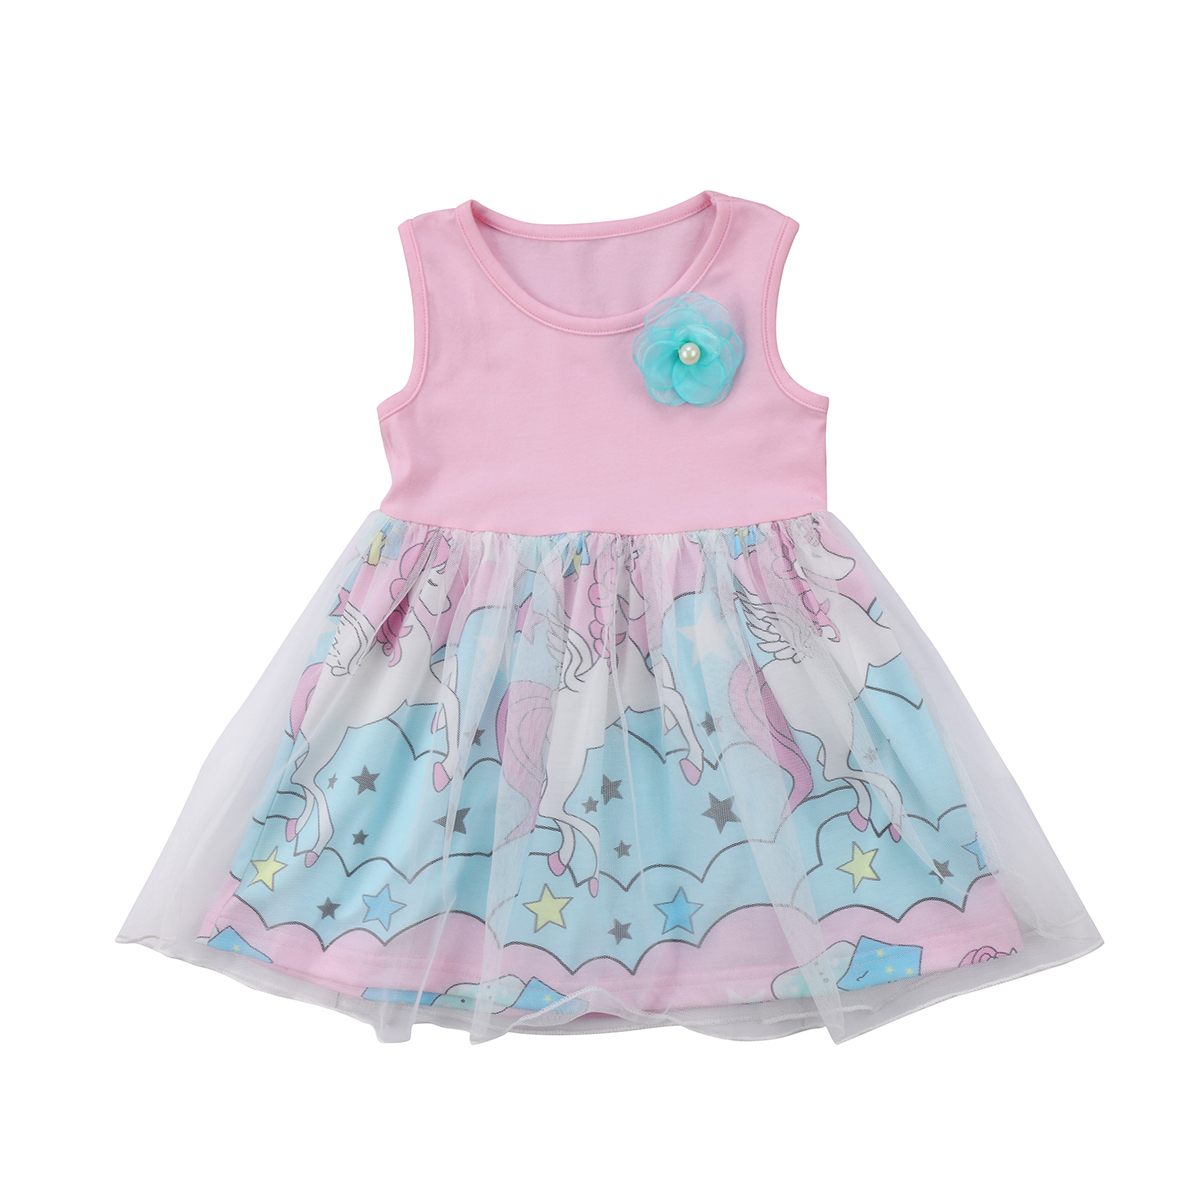 Newborn Toddled Kids Baby Girls Floral Unicorn Sleeveless O Neck Pageant Party Tulle Tutu Dress Clothes Summer